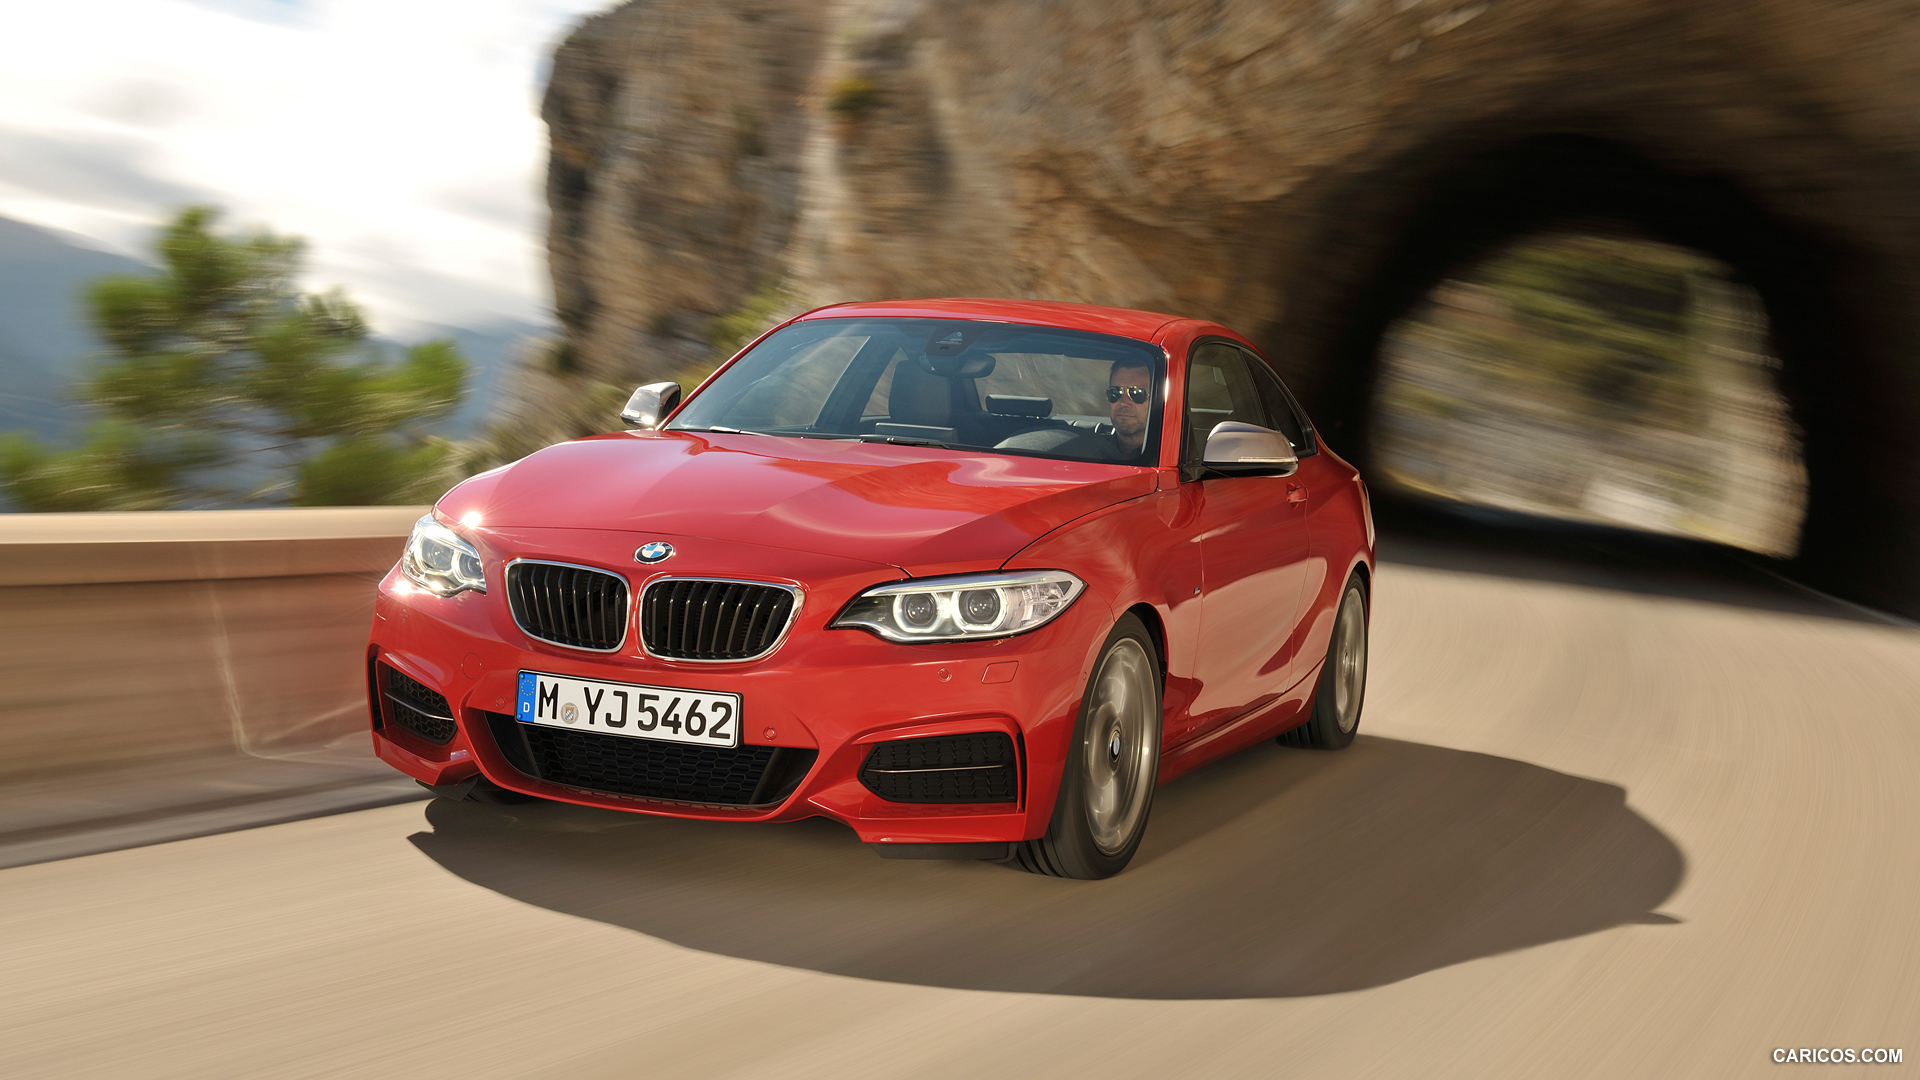 Nice wallpapers 2014 BMW M235i Coupe 1920x1080px